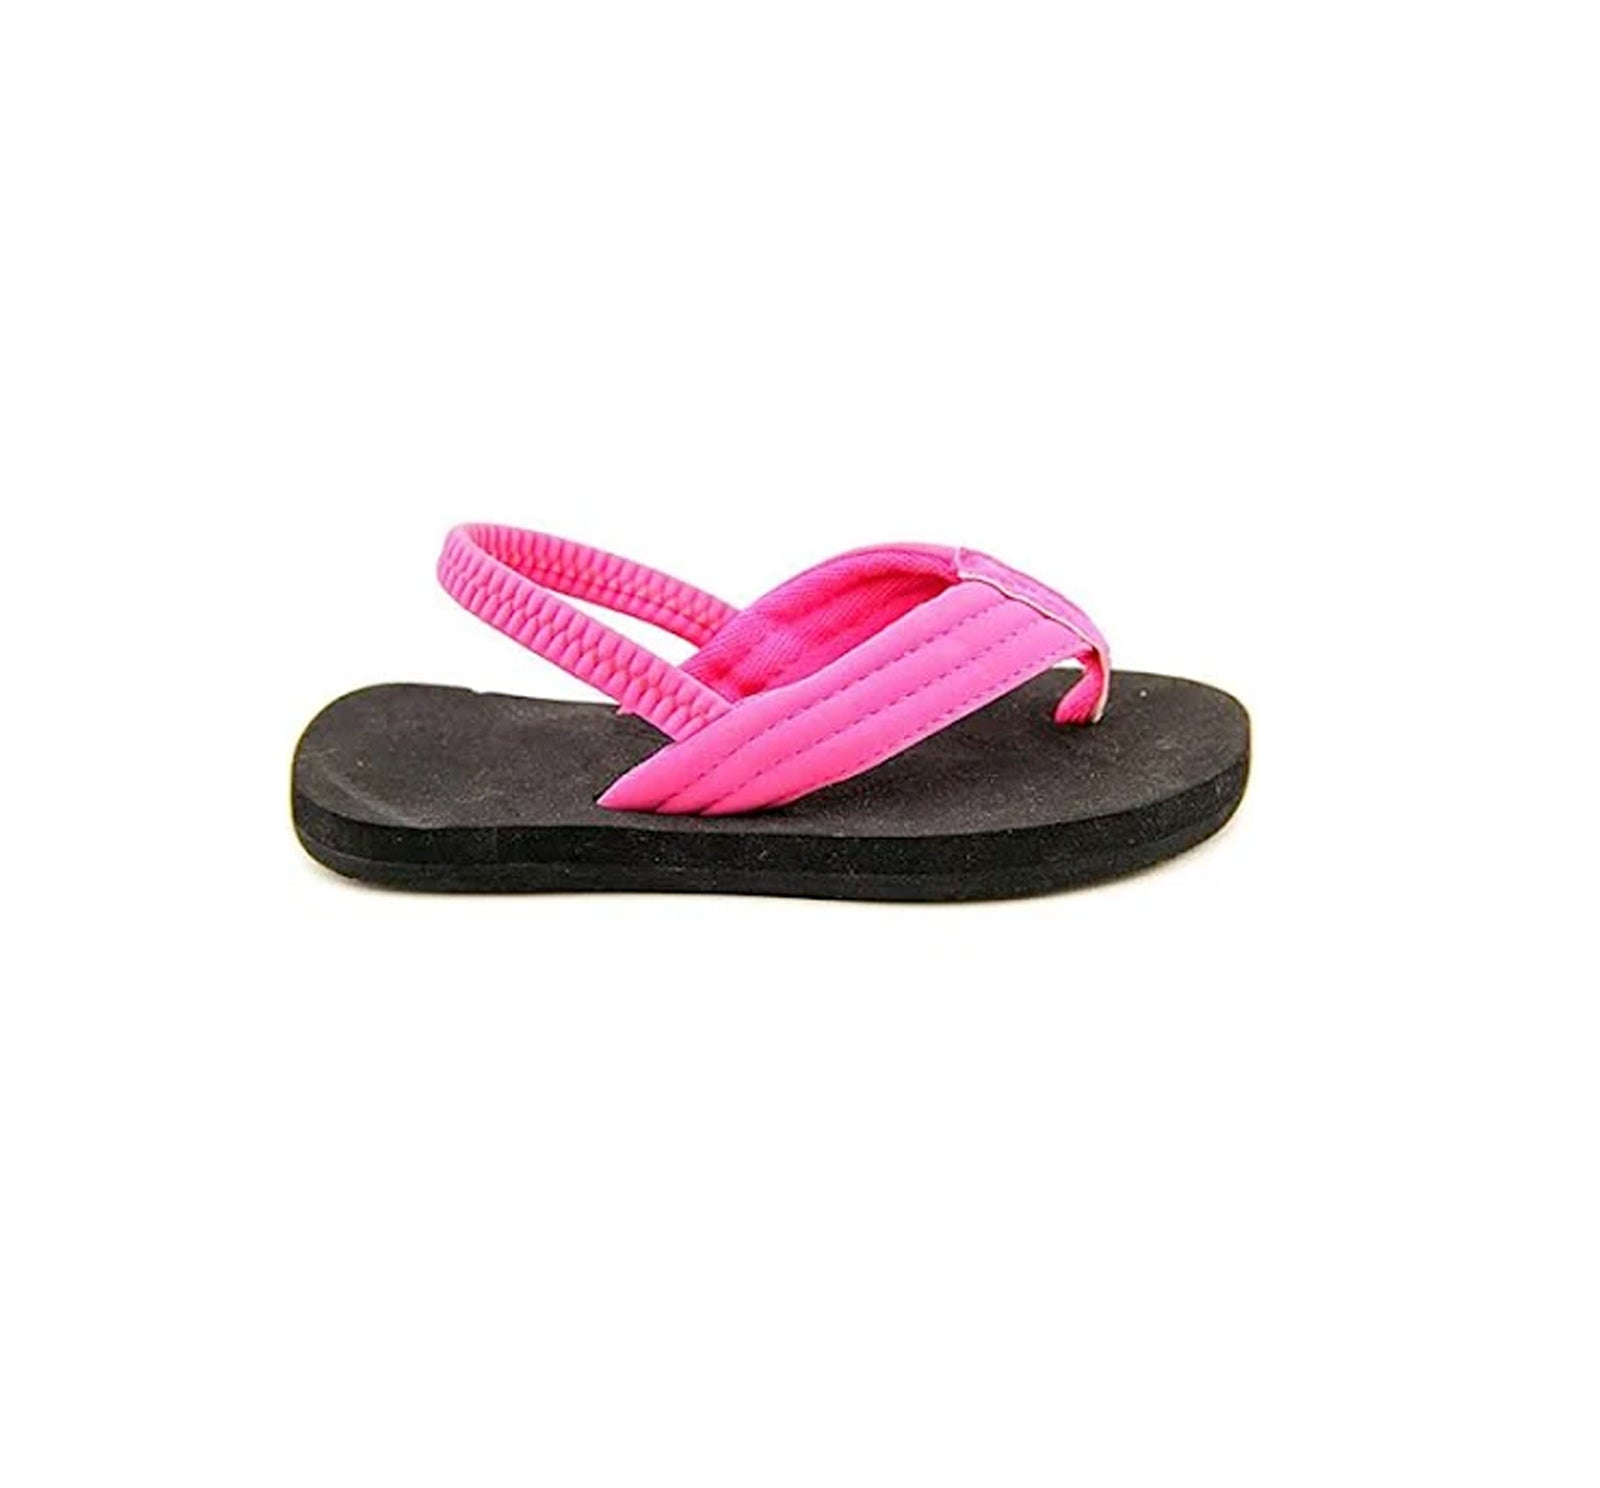 Rainbow Grombows Youth Girl's Sandals - Back Strap